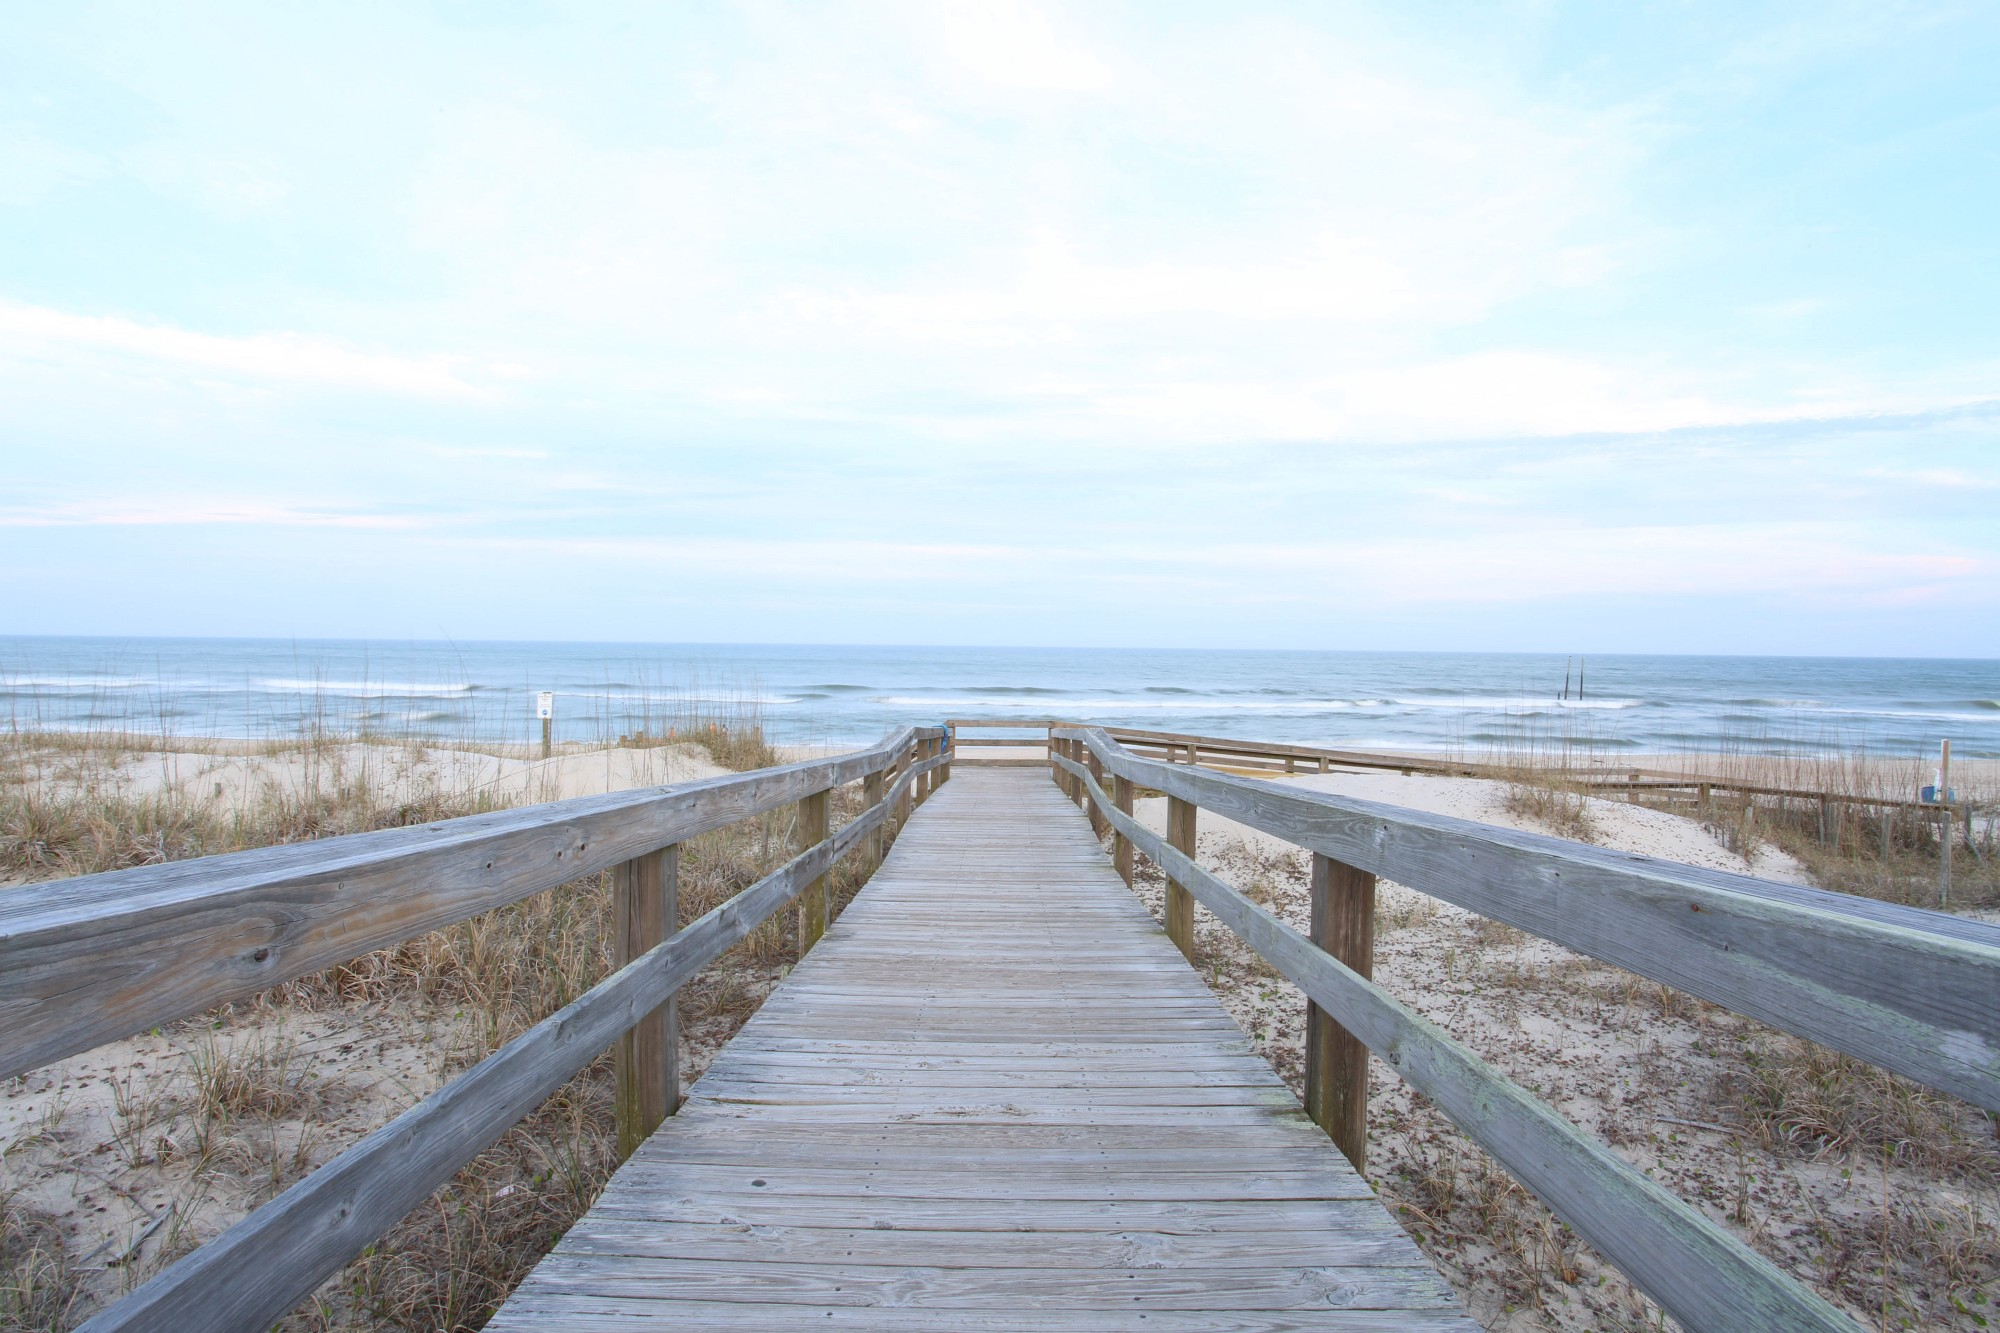 A boardwalk on the beach, leading from the sand, down to the ocean.